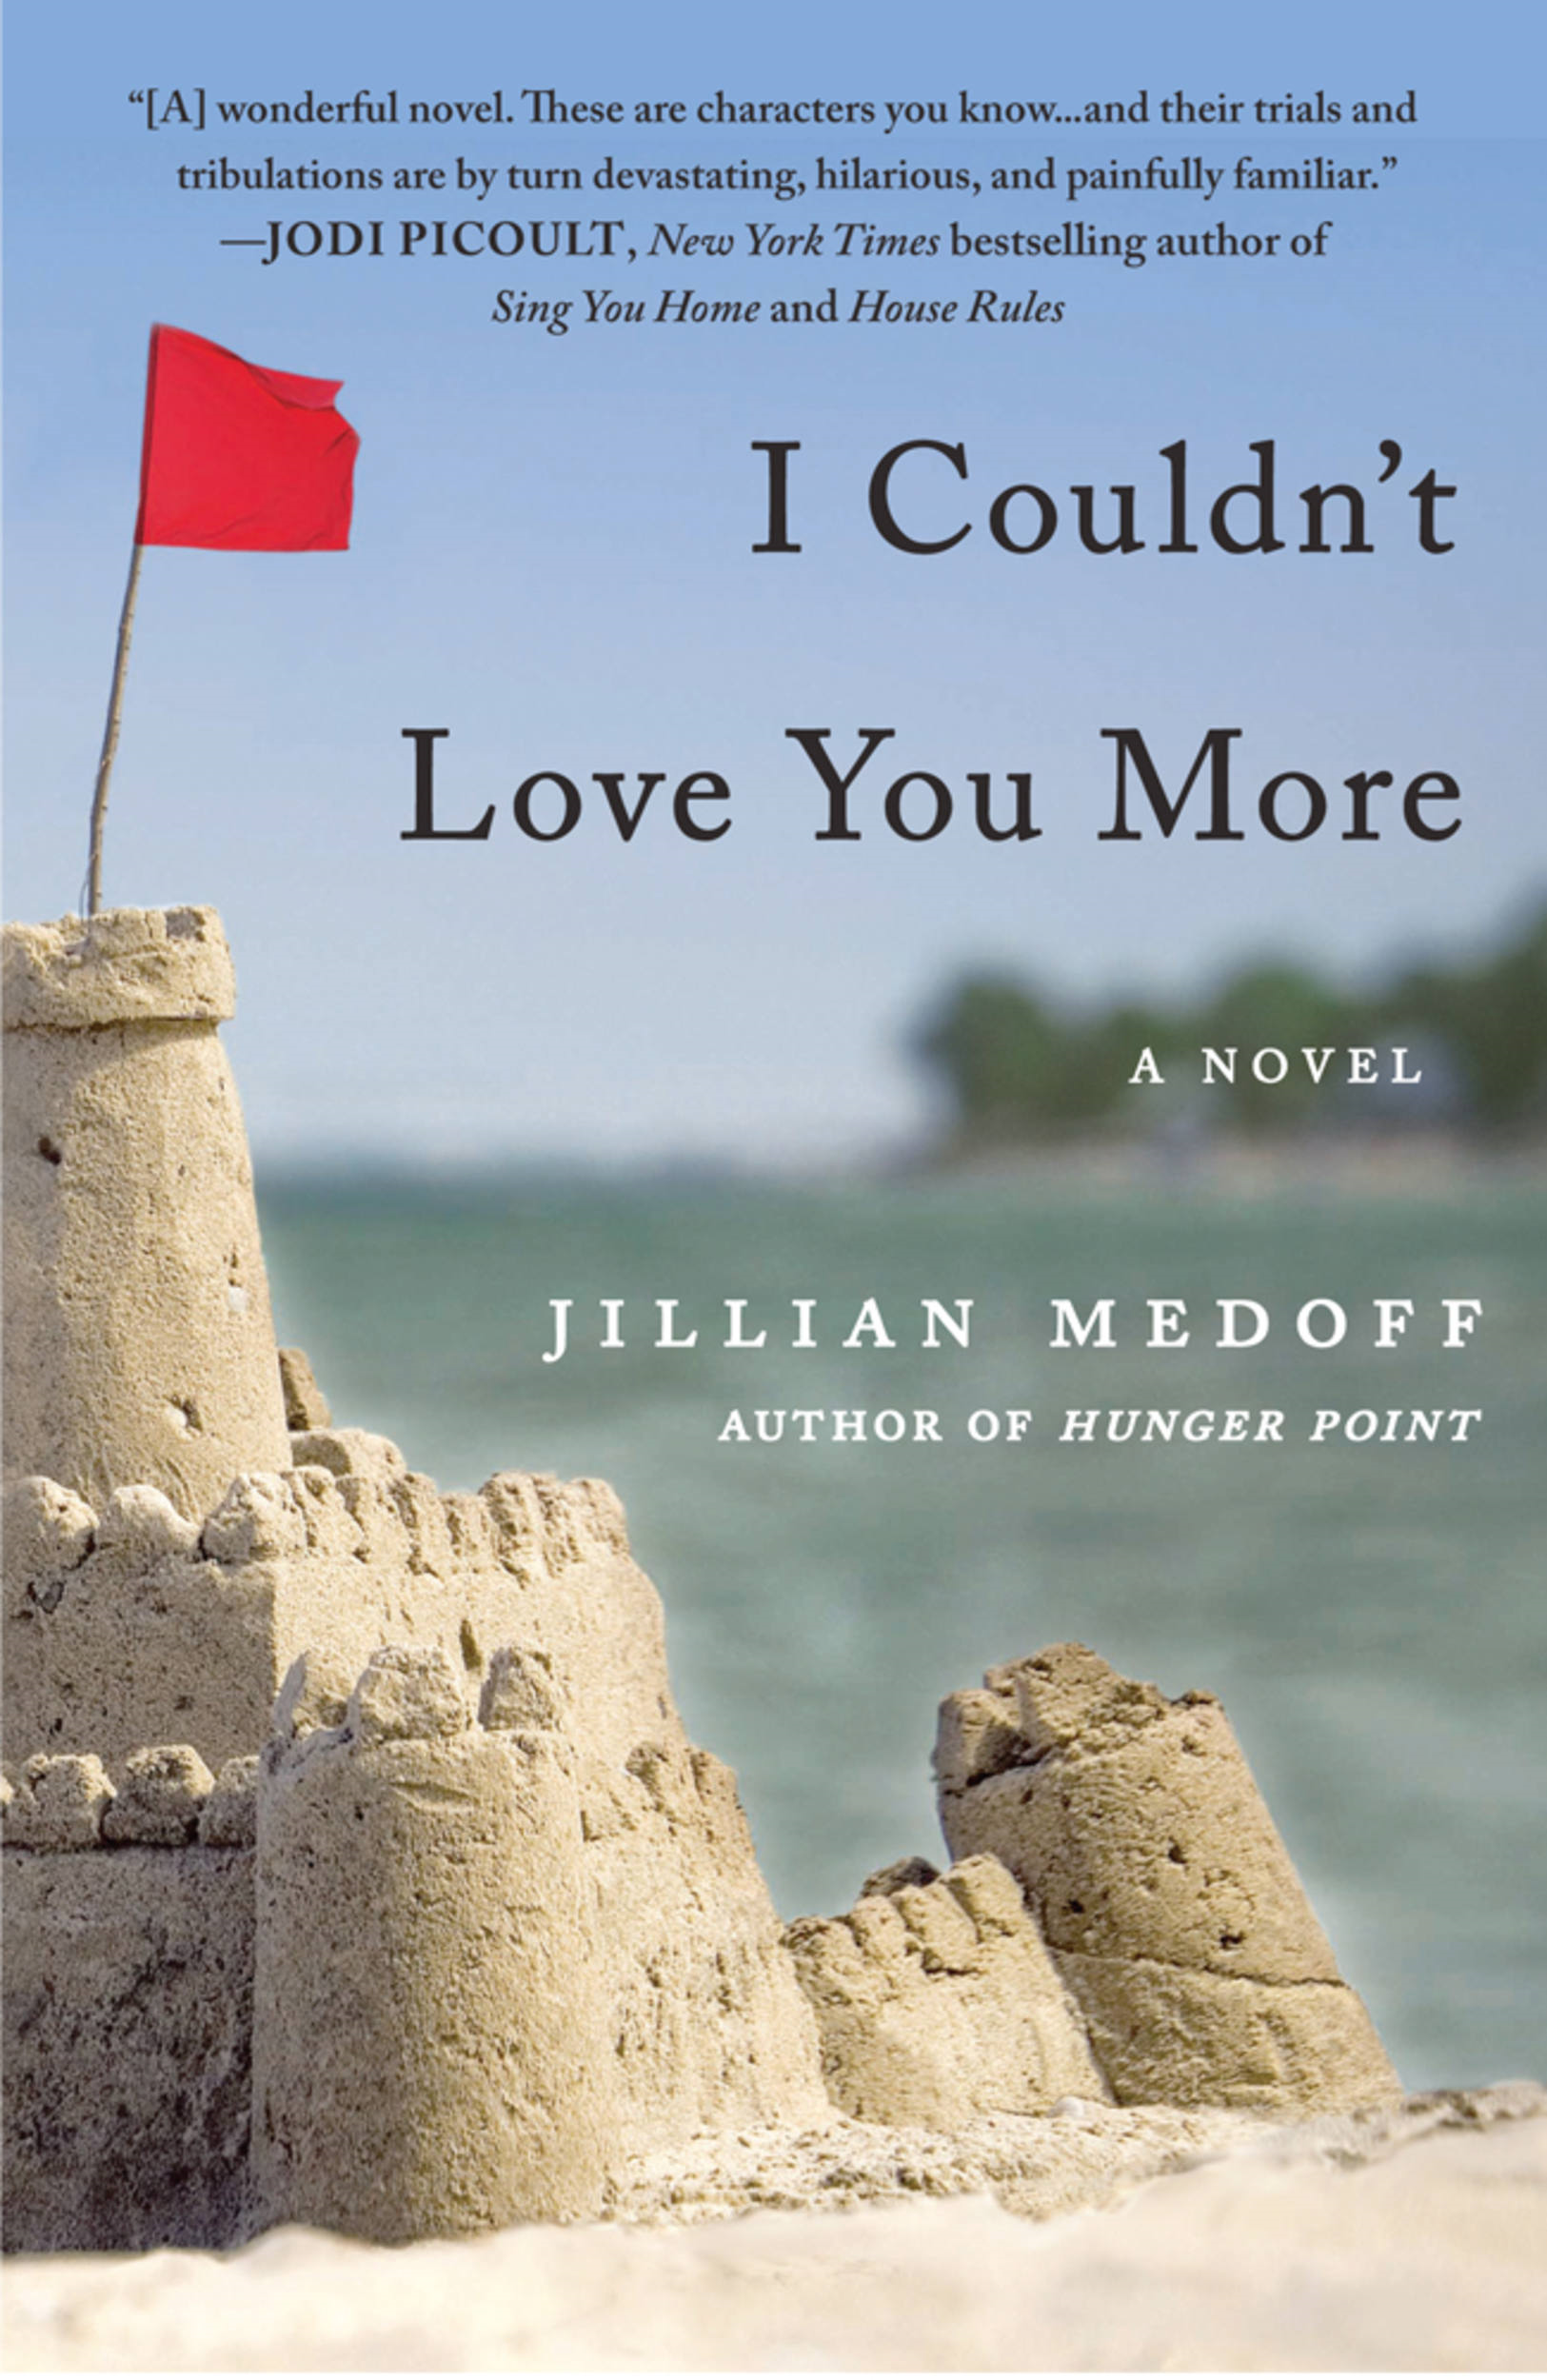 I Couldn't Love You More By: Jillian Medoff